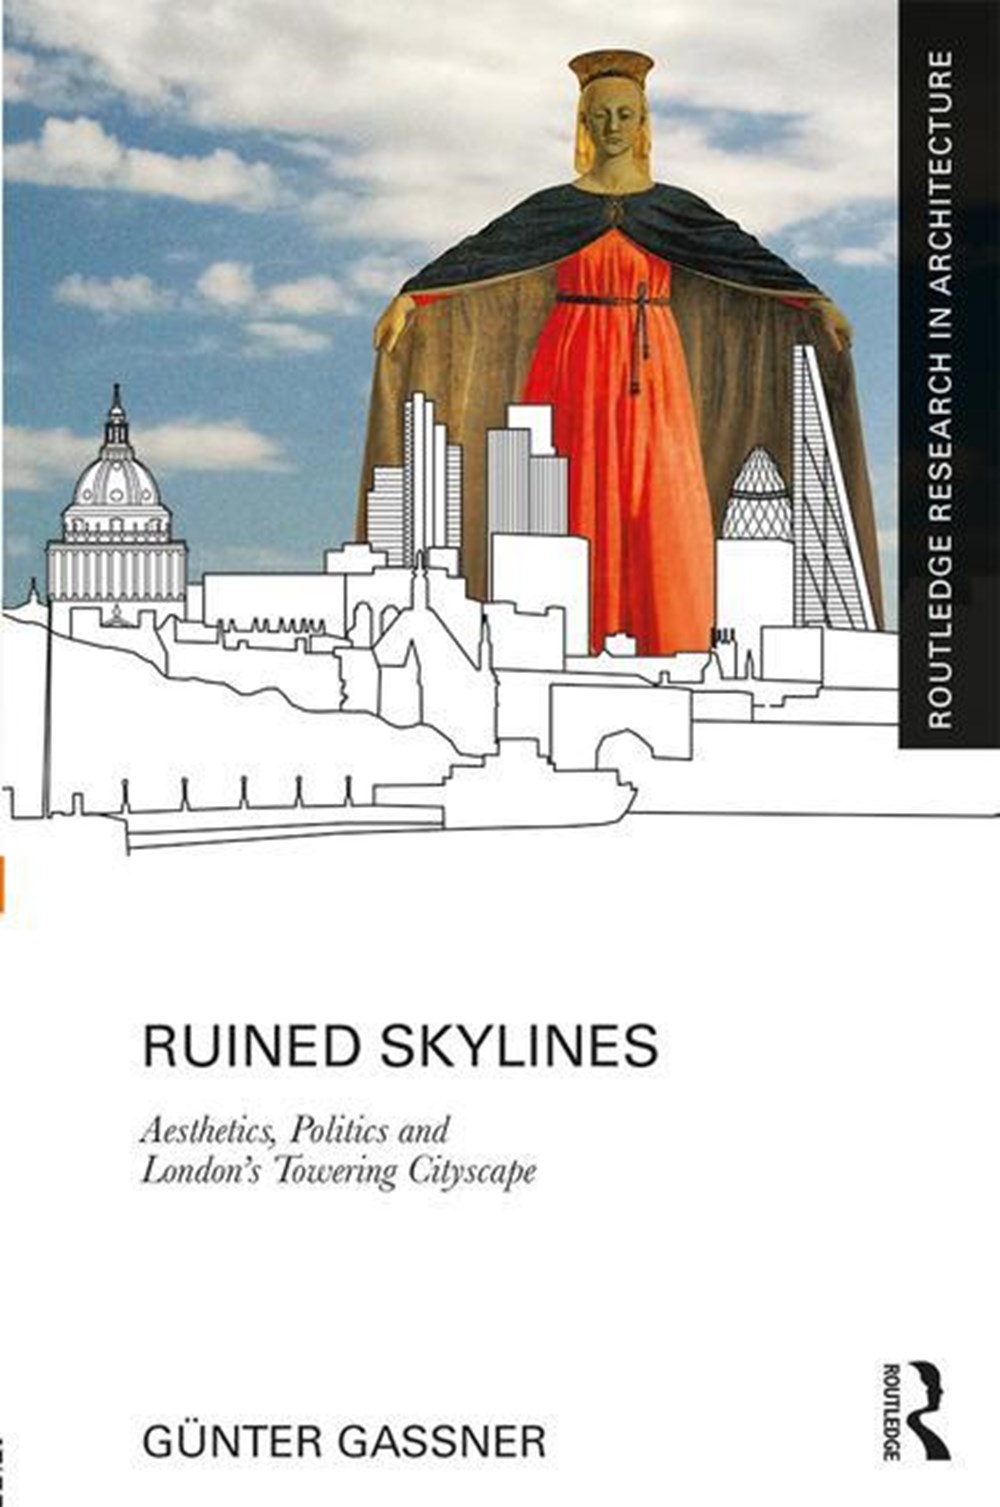 Ruined Skylines Aesthetics, Politics and London's Towering Cityscape